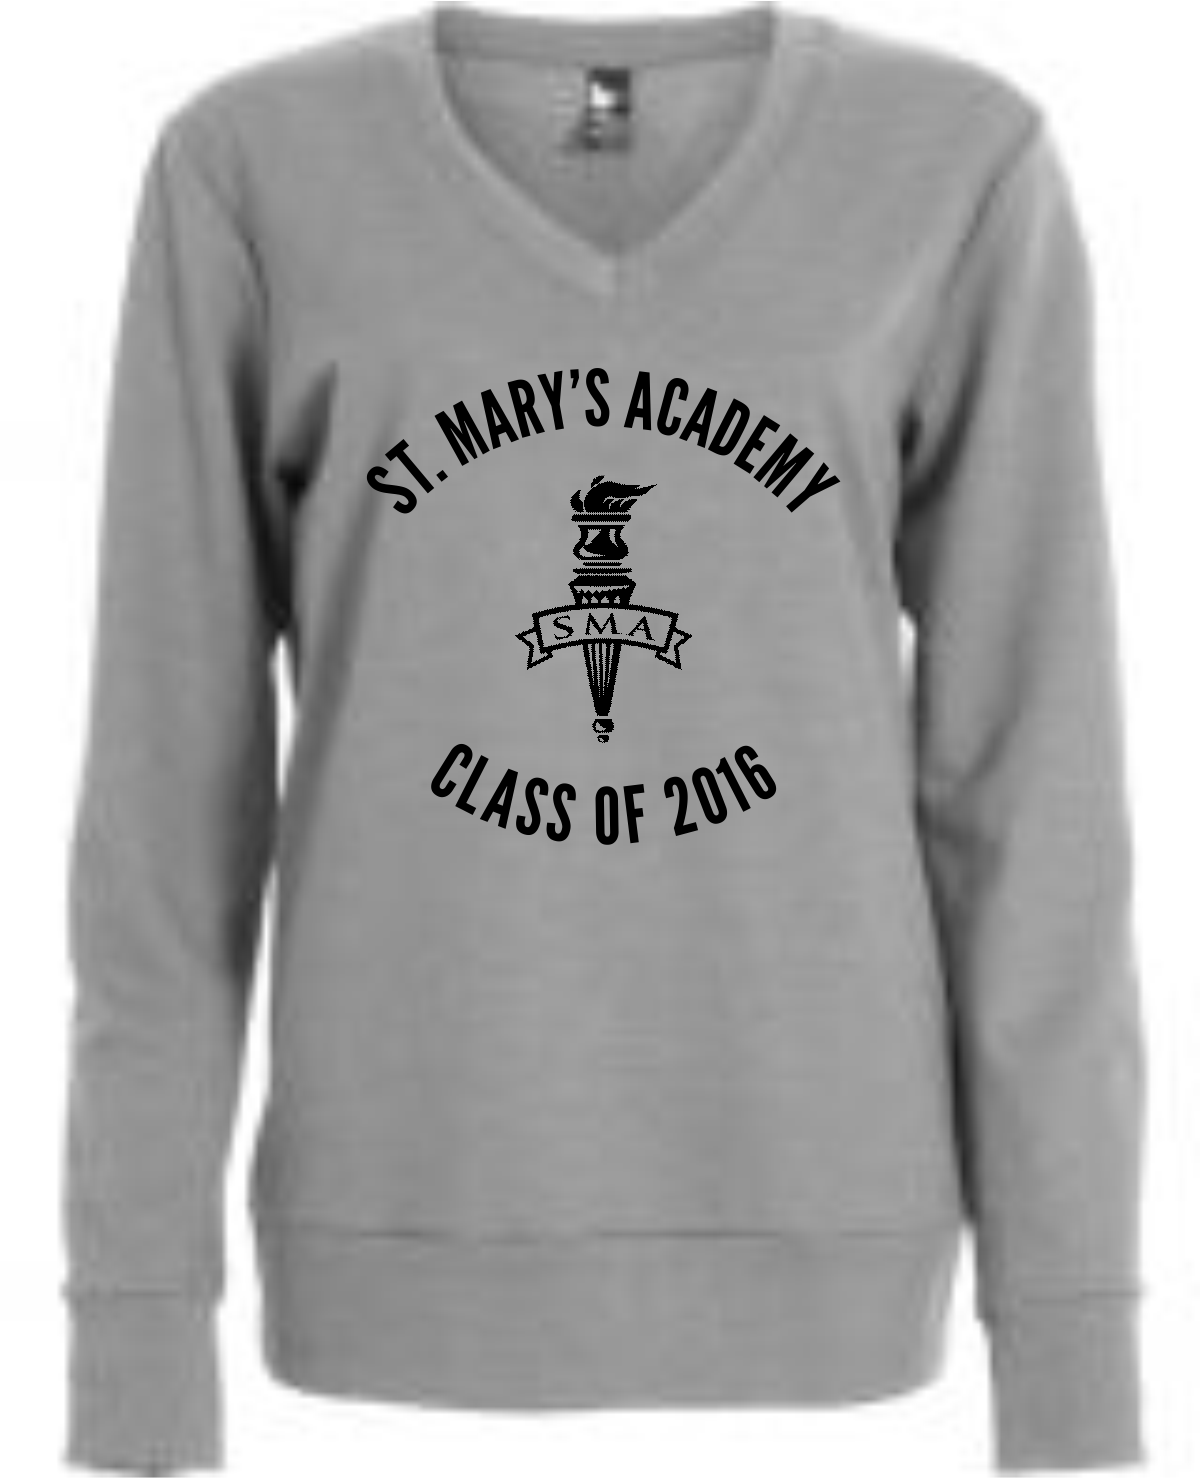 Custom School Apparel & Promotional Items - Printed Shirts ...